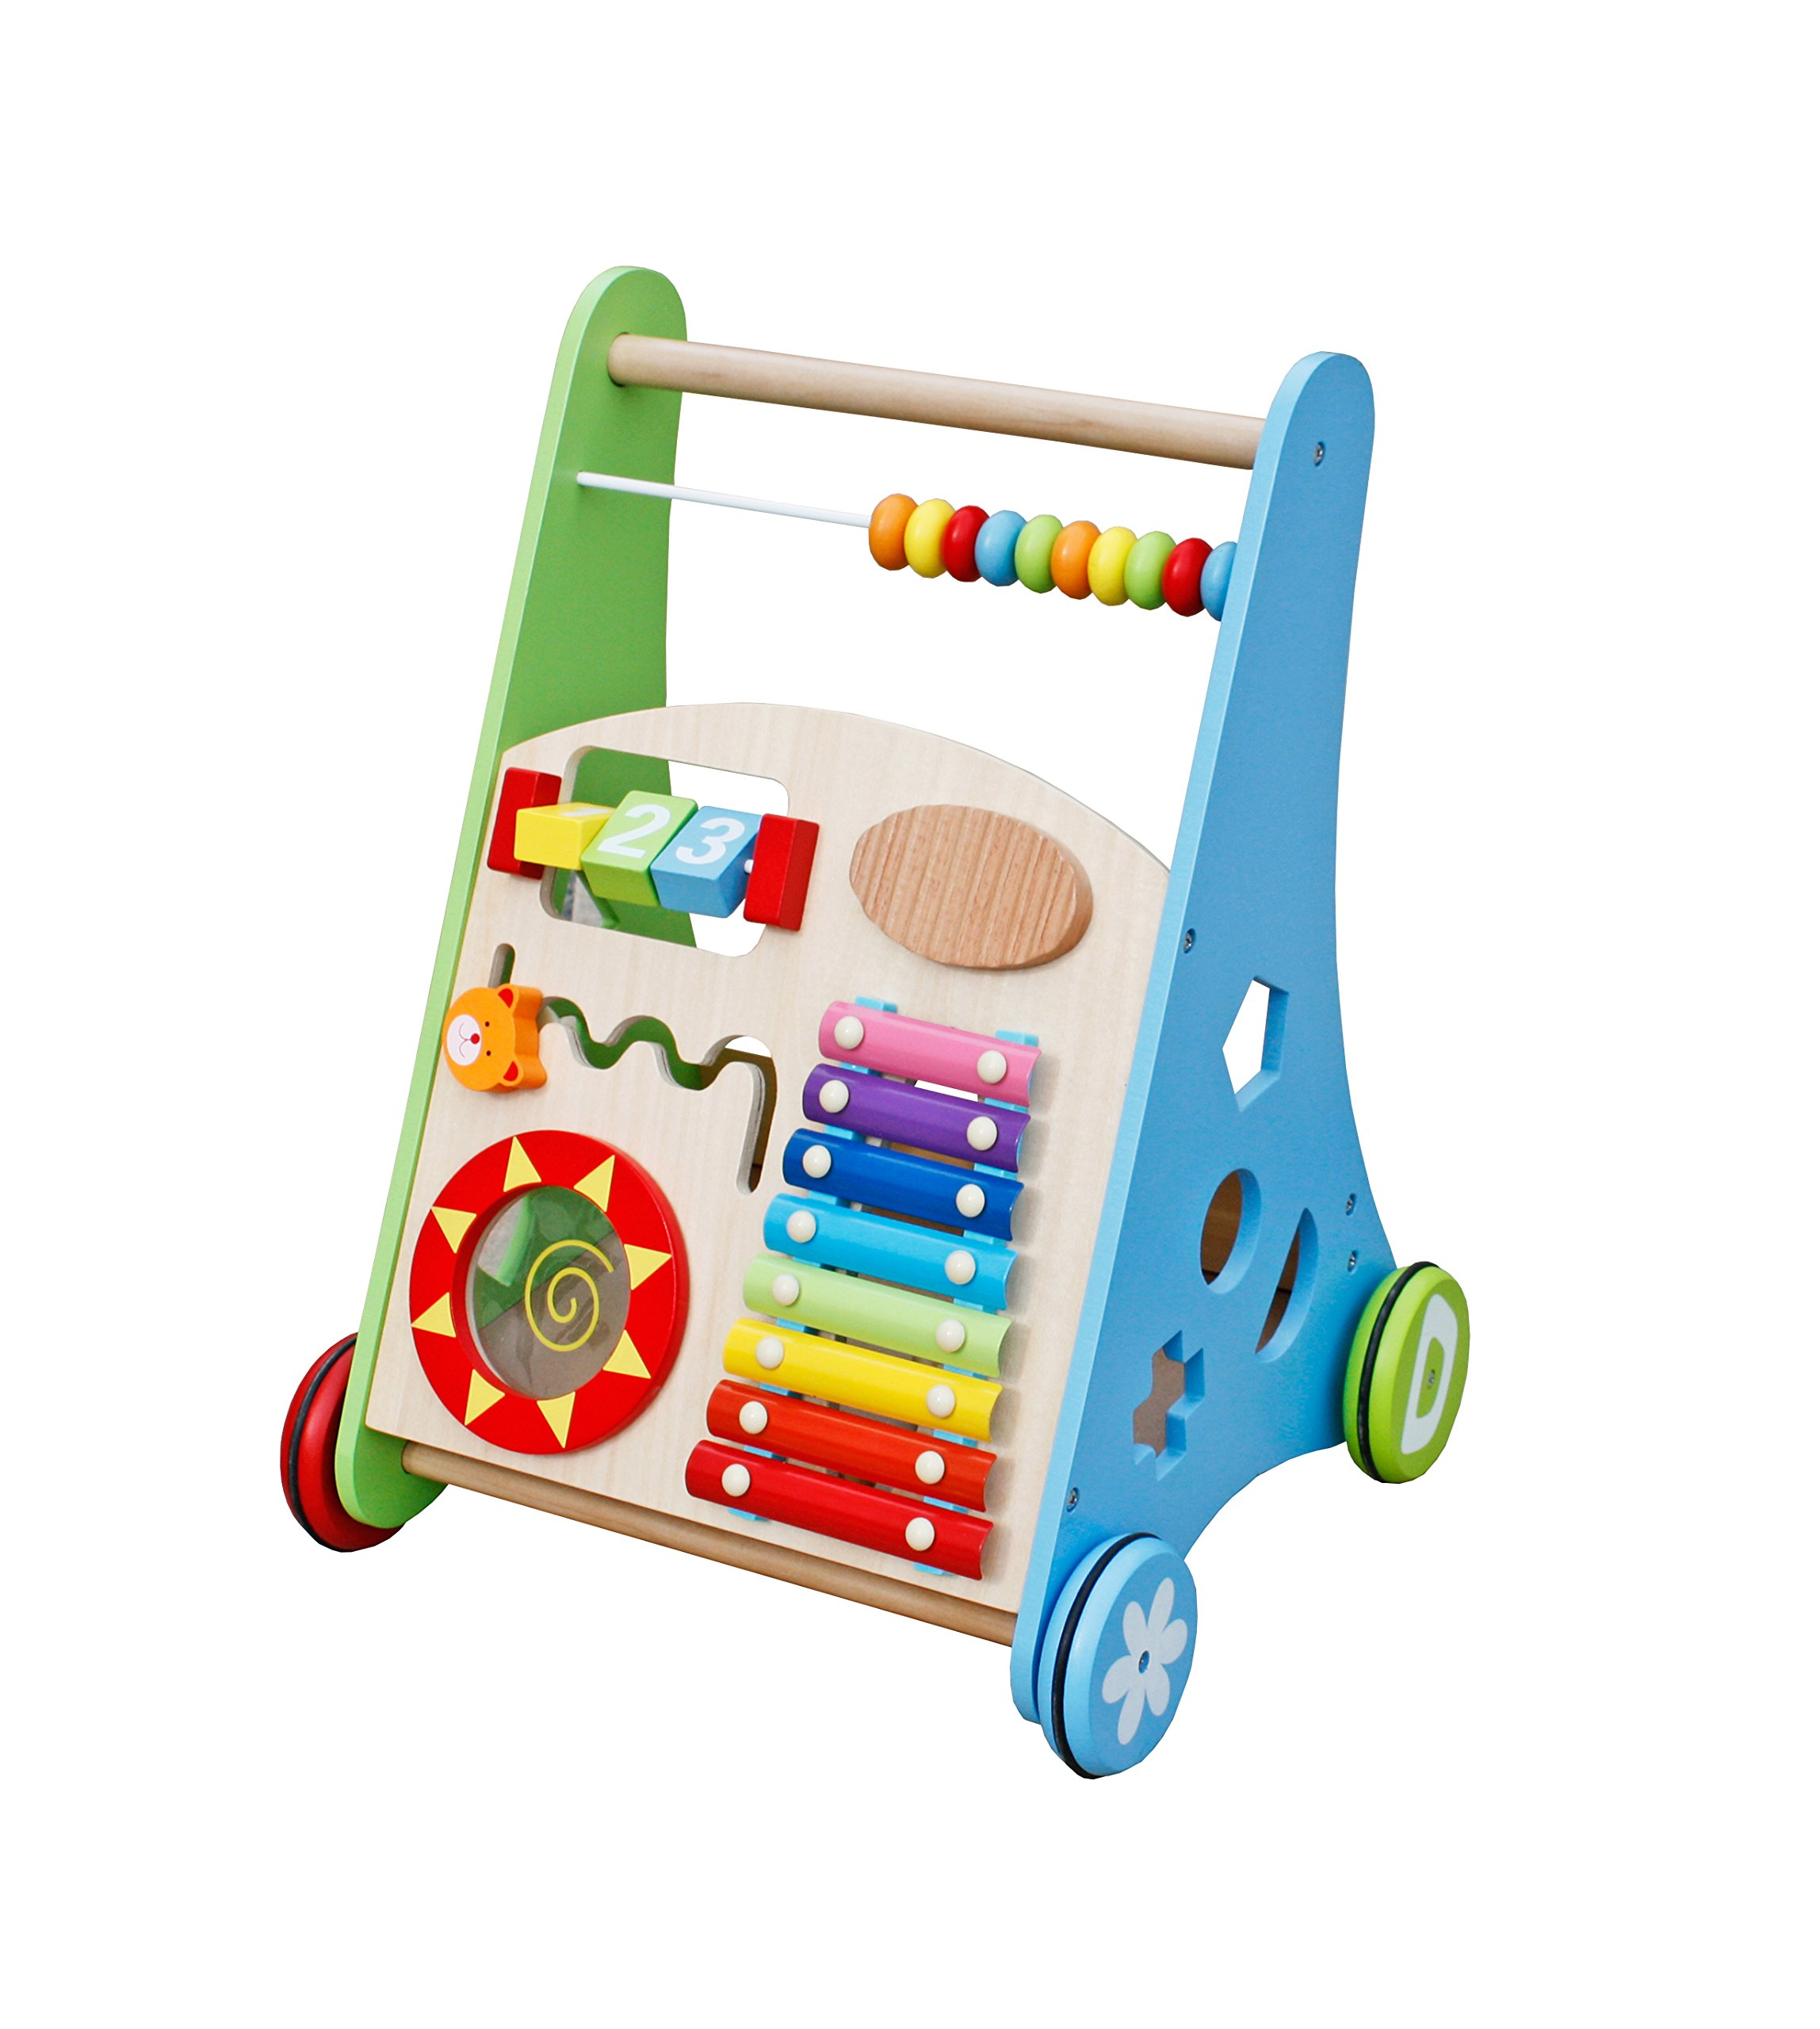 Pidoko Kids Block and Roll Cart - Wooden Push and Pull Baby Walker with Multiple Activity Centre by Pidoko Kids (Image #2)